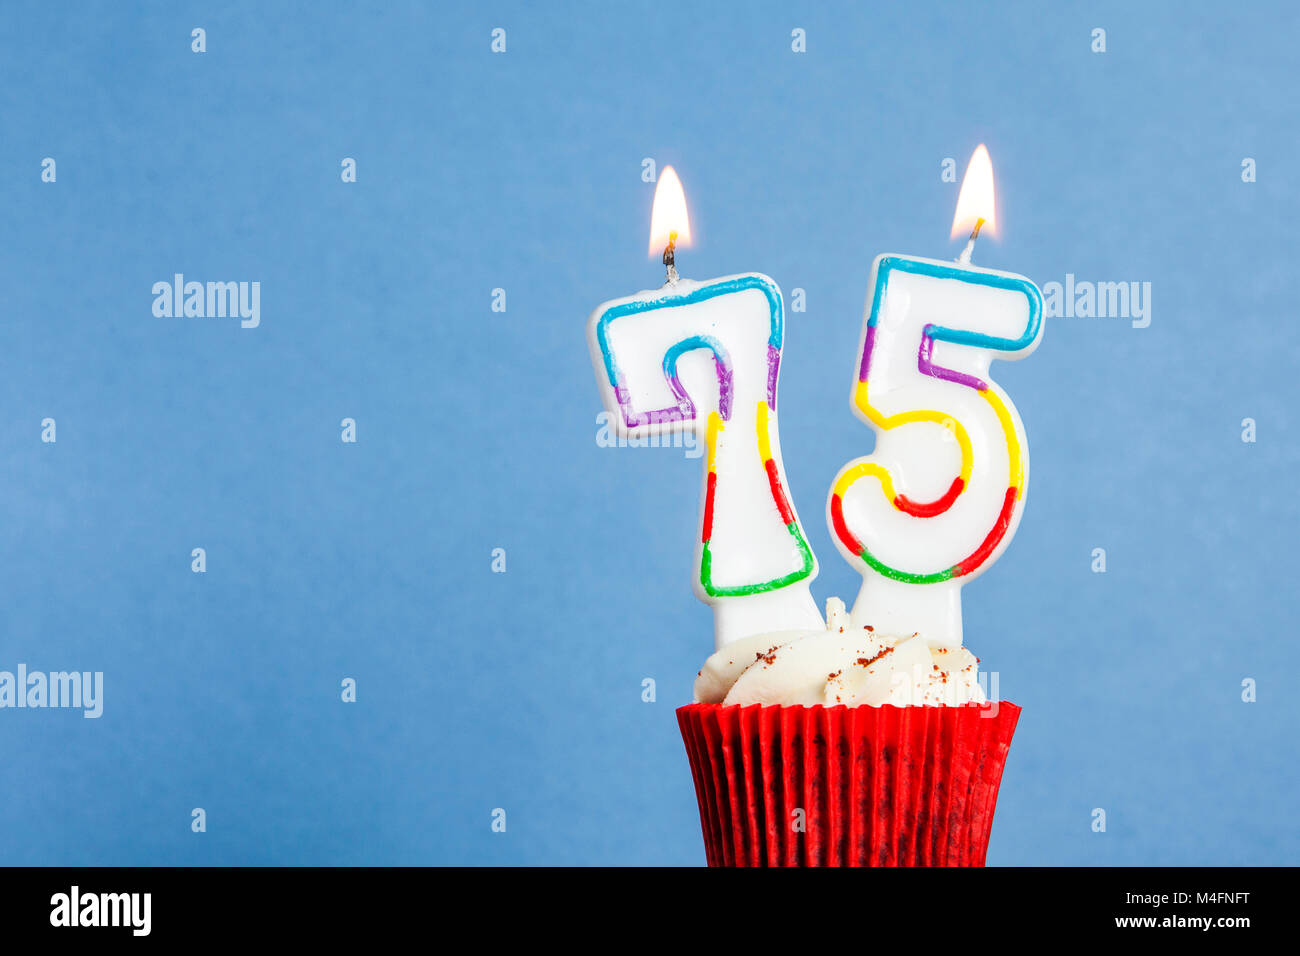 Number 75 Birthday Candle In A Cupcake Against Blue Background